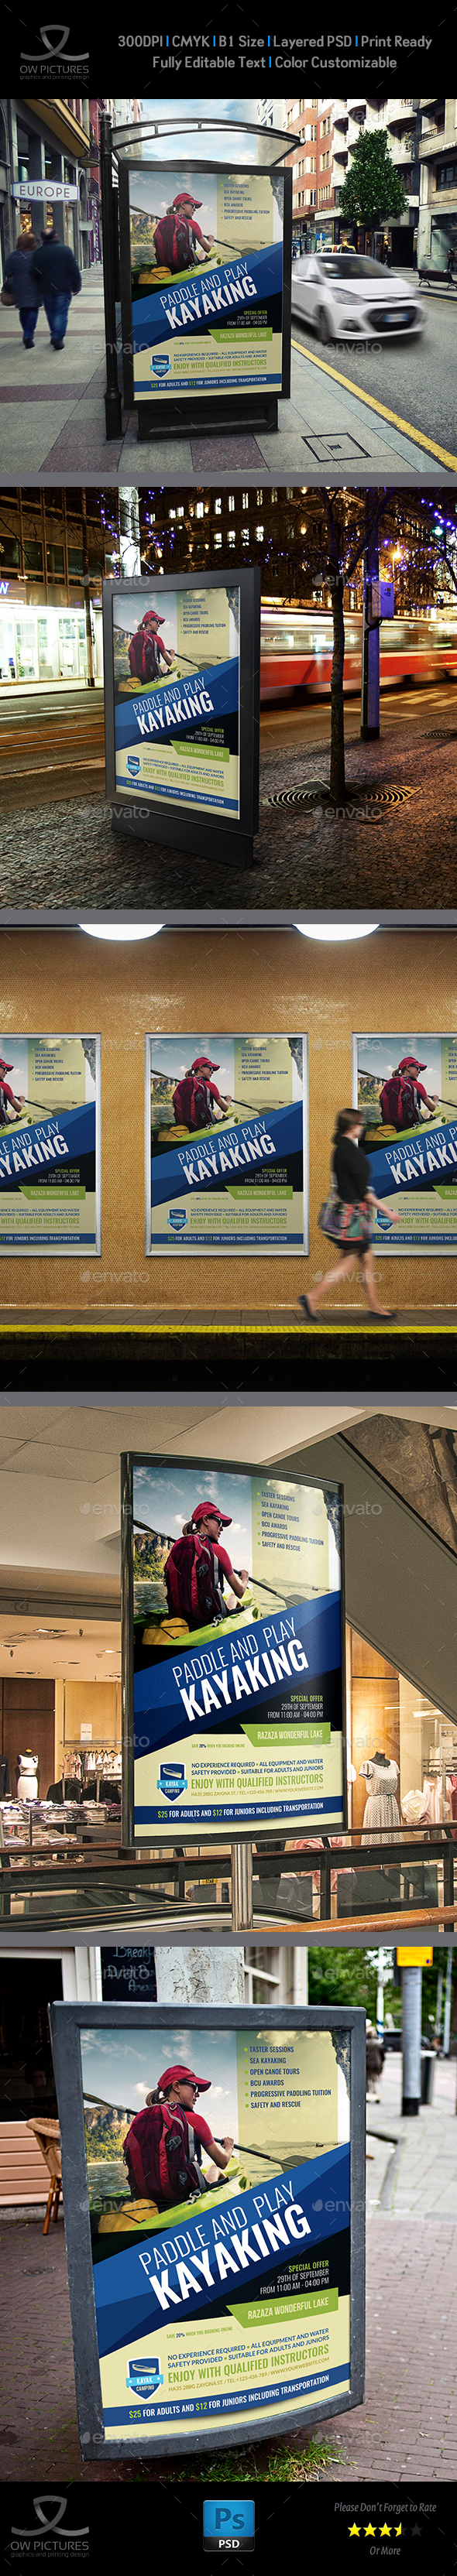 Kayaking Poster Template - Signage Print Templates